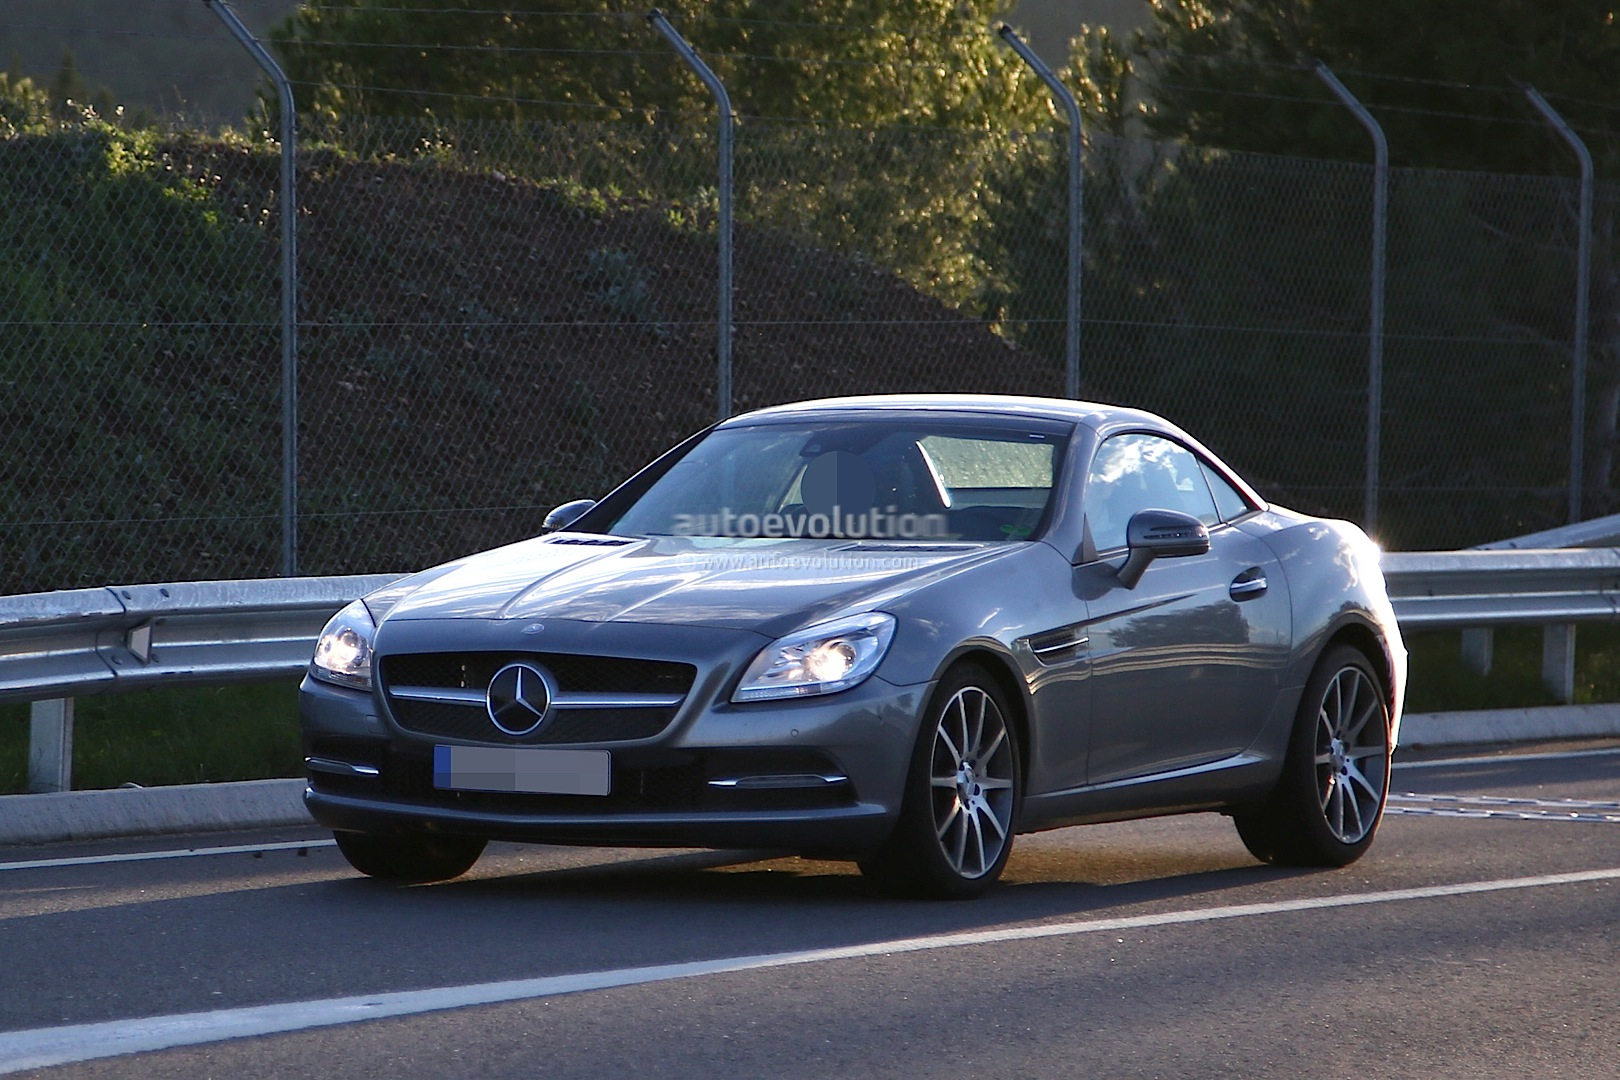 2016 mercedes benz slc is a mid cycle facelift for the slk autoevolution. Black Bedroom Furniture Sets. Home Design Ideas